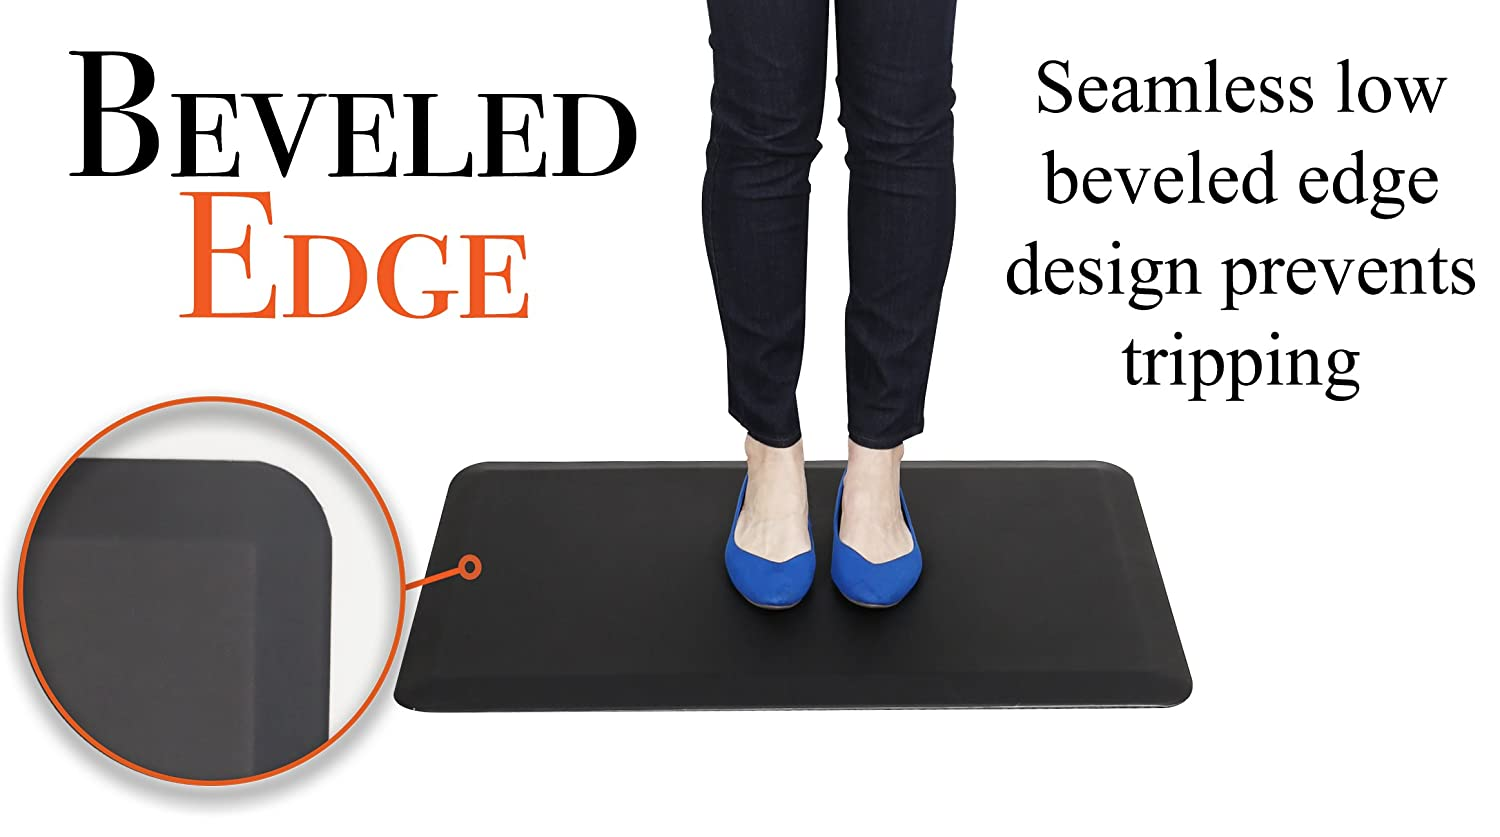 """36 // Black Kitchens Knees /& Feet! Your Passport to Healthier Joints Cubes Stand Steady DiploMat Anti-Fatigue Mat 36/"""" x 24/"""" Ergonomic Anti-Fatigue Mat Designed for Offices Retail and More"""